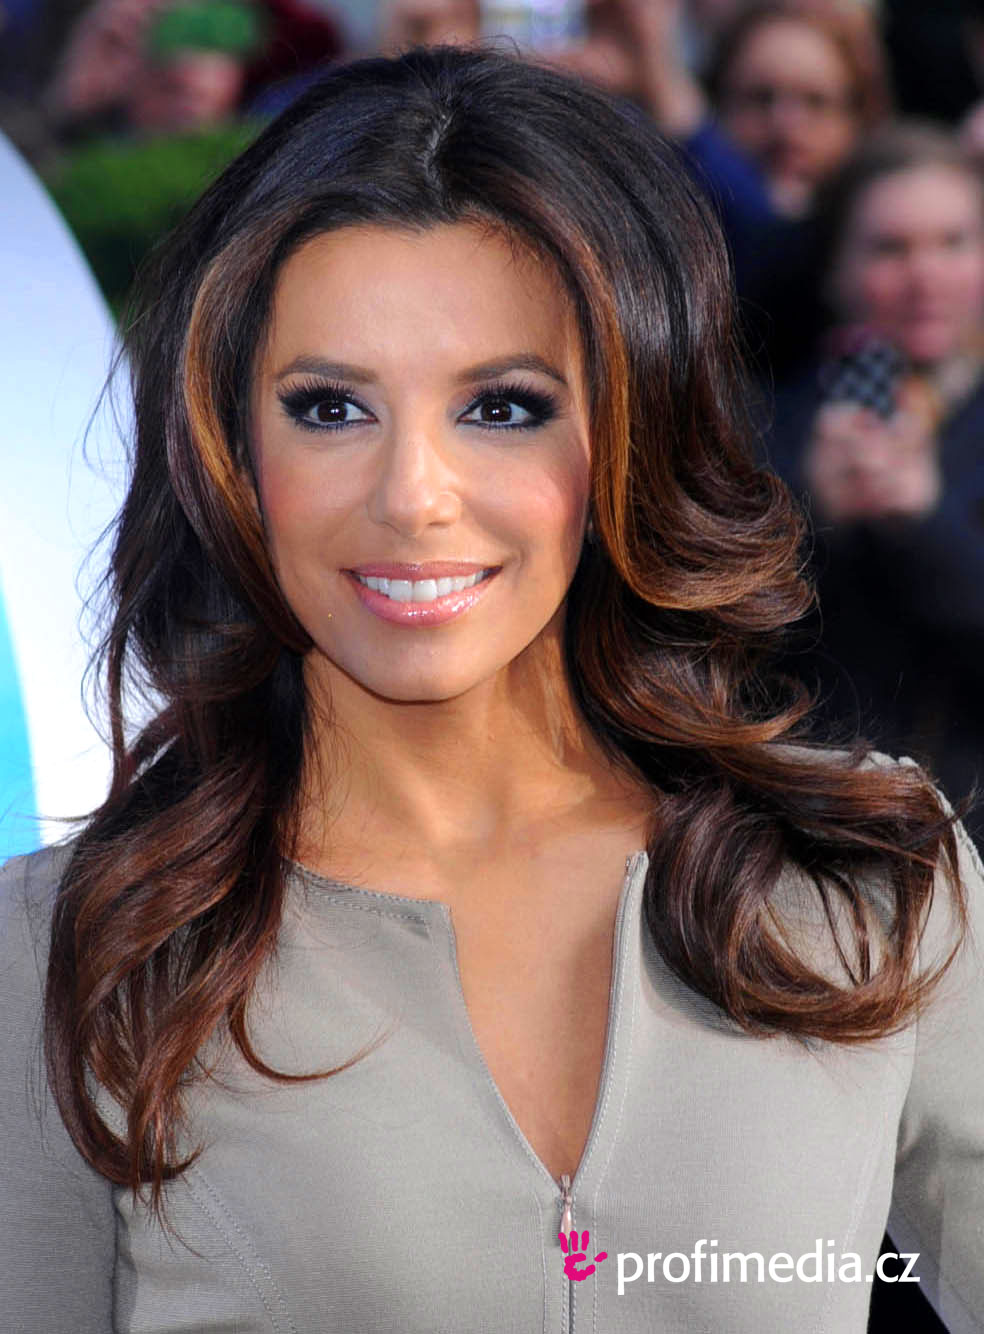 Eva longoria hairstyle easyhairstyler you can try this eva longorias hairstyle with your own photo upload at easyhairstyler urmus Choice Image